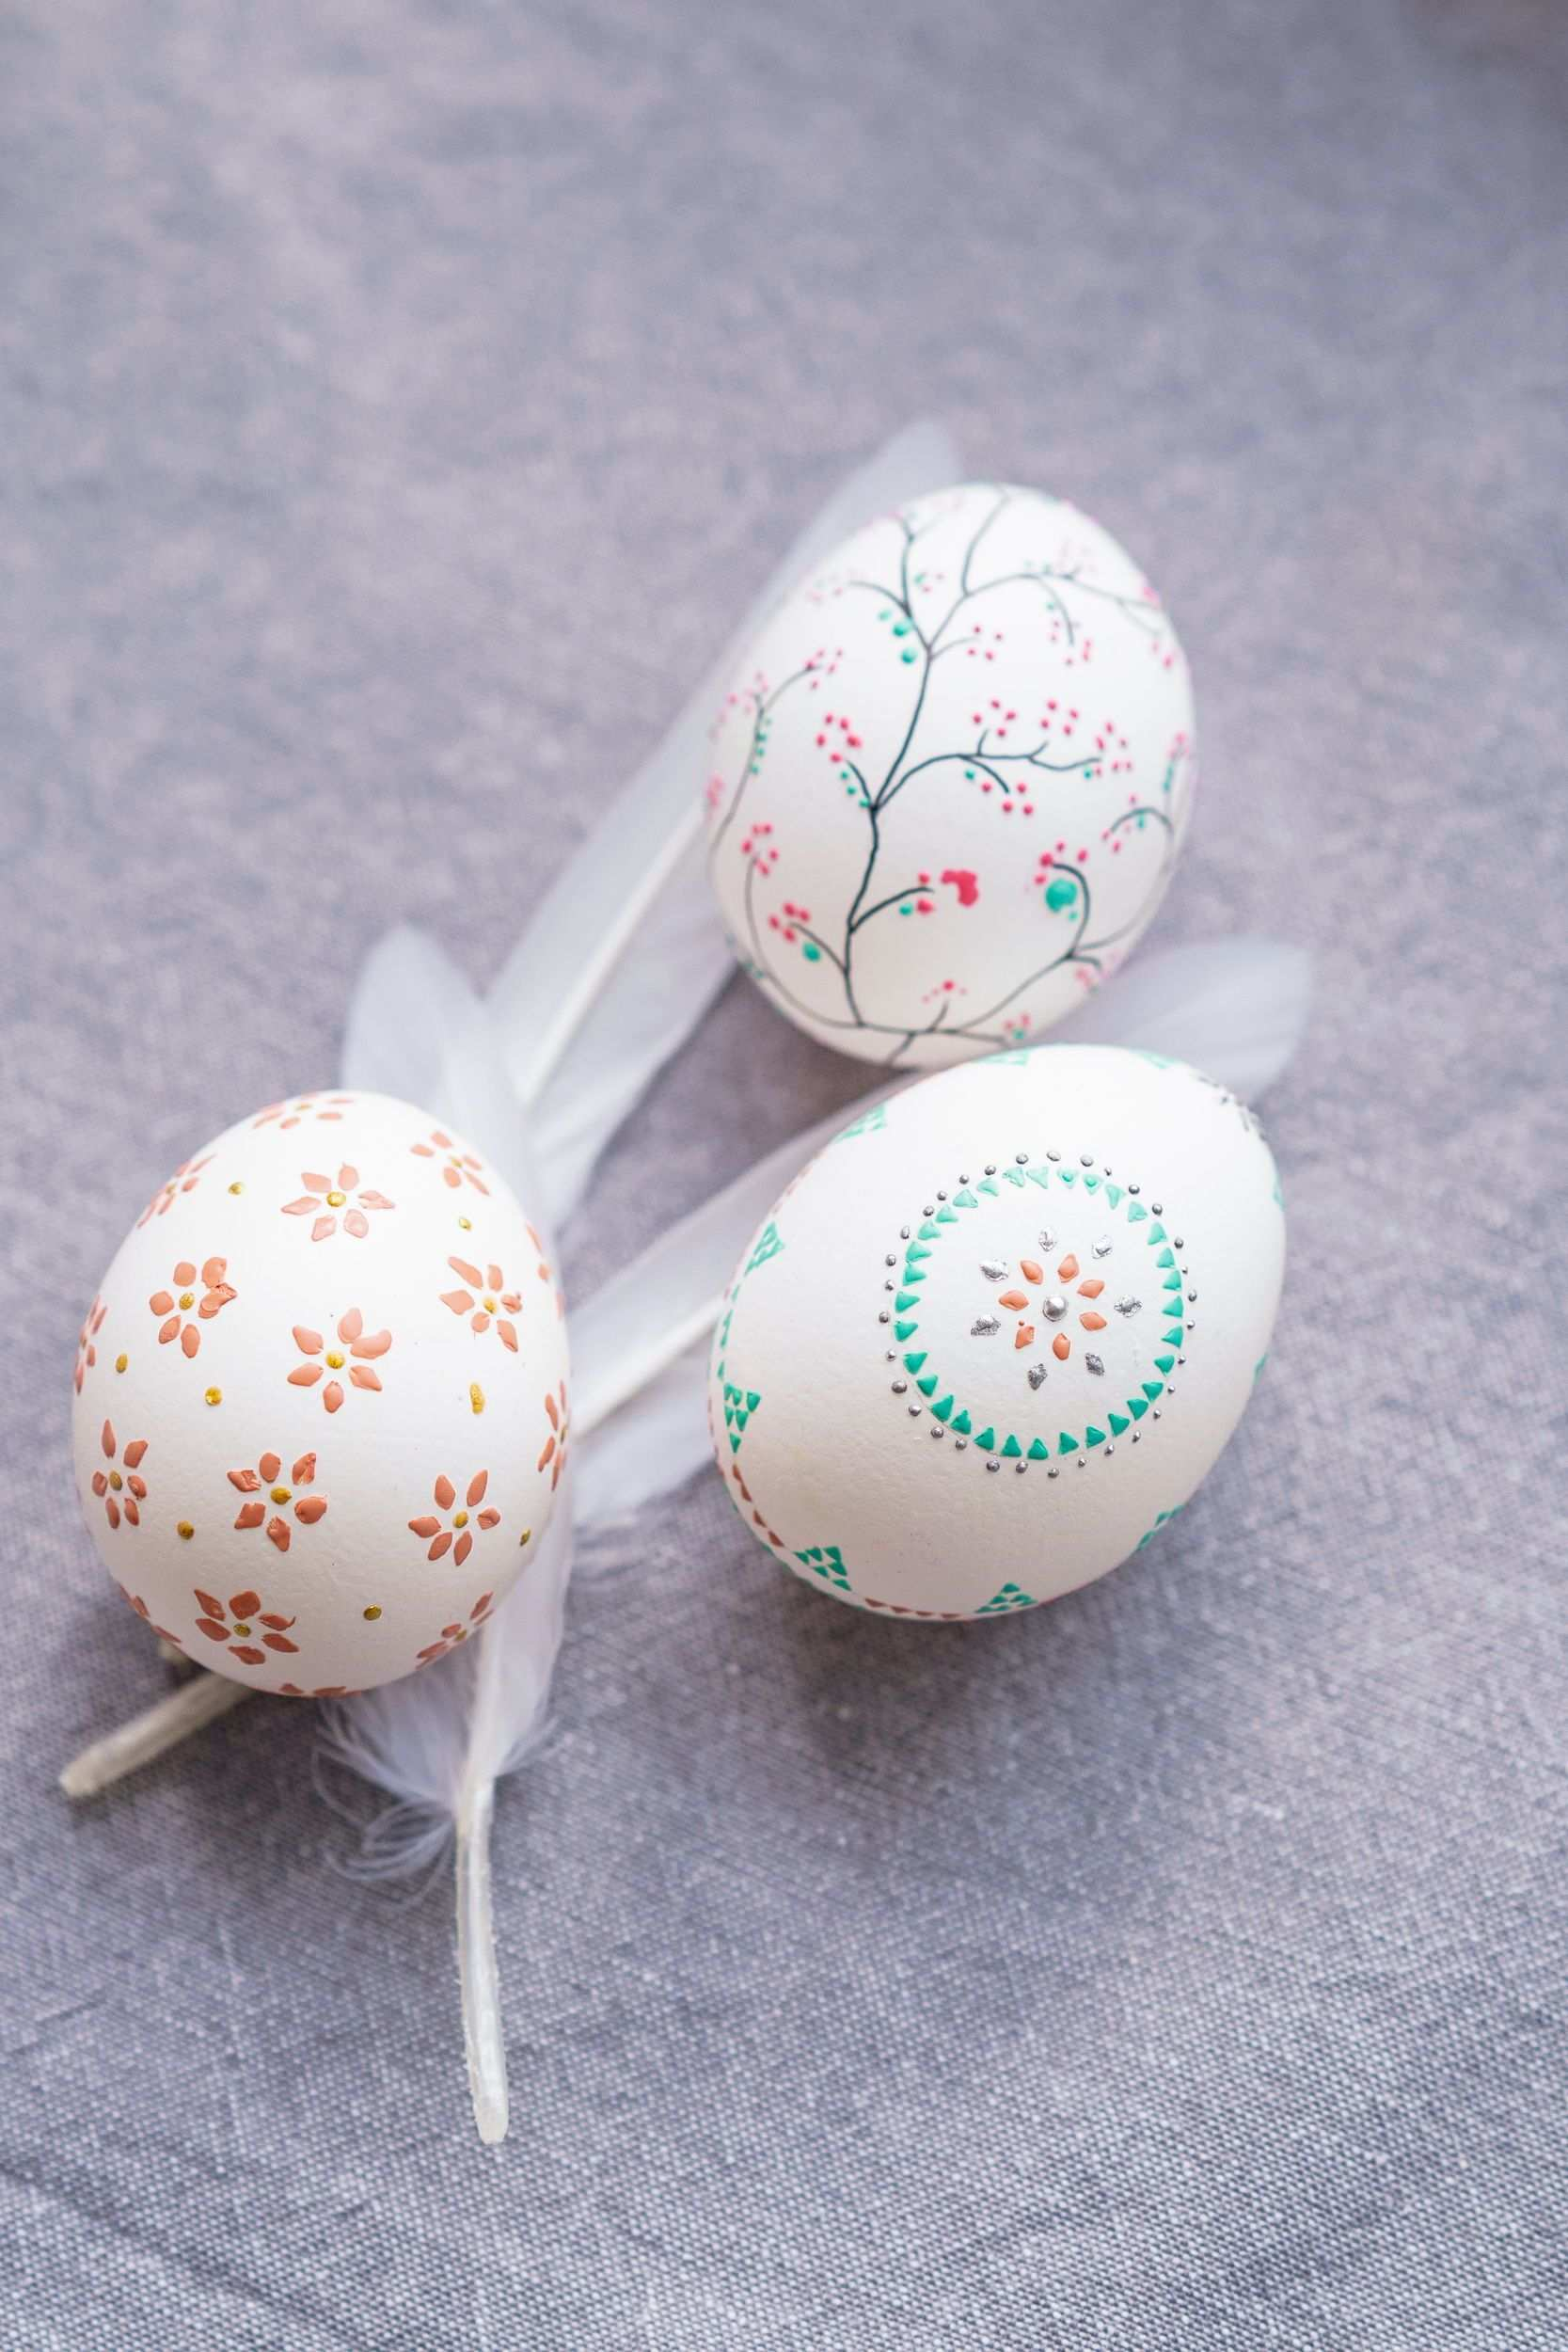 Easter Diy Decorating Easter Eggs With Beeswax Easter Egg Decorating Creative Easter Eggs Easter Diy